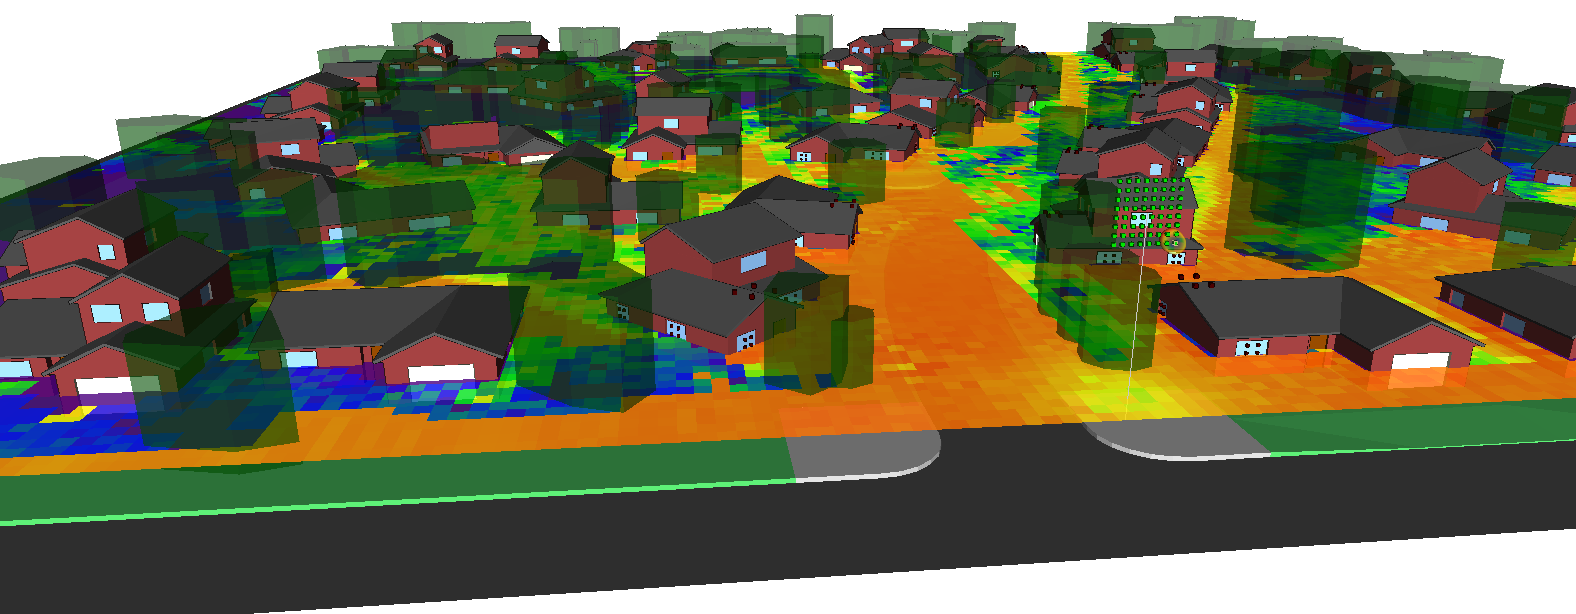 Coverage in neighborhood is significantly affected by shadowing from trees and houses